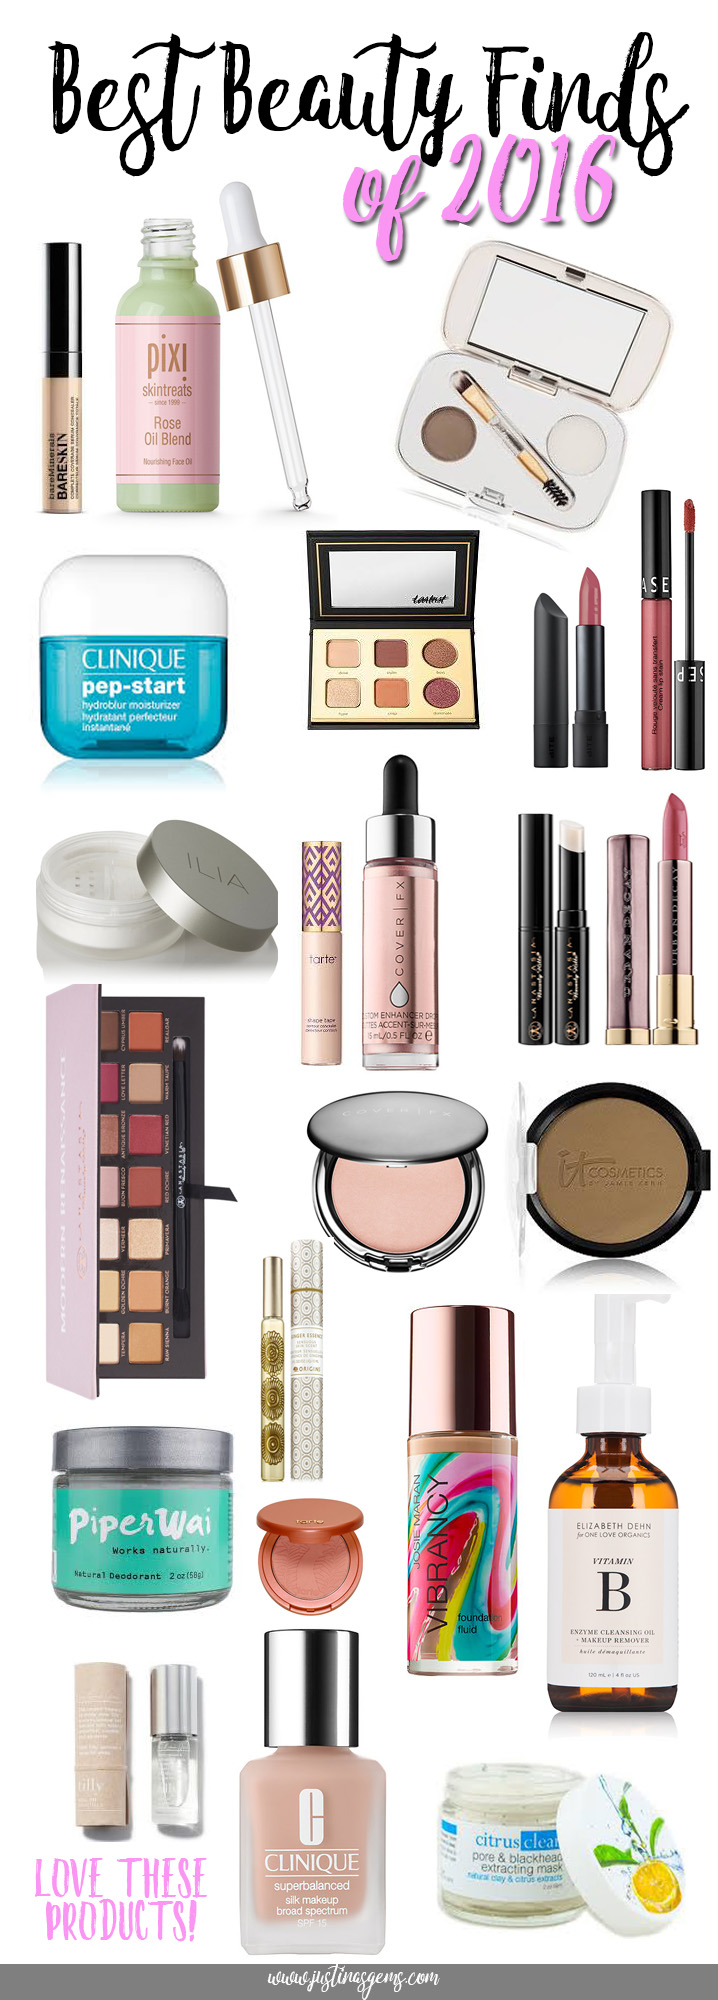 the-best-beauty-finds-of-2016